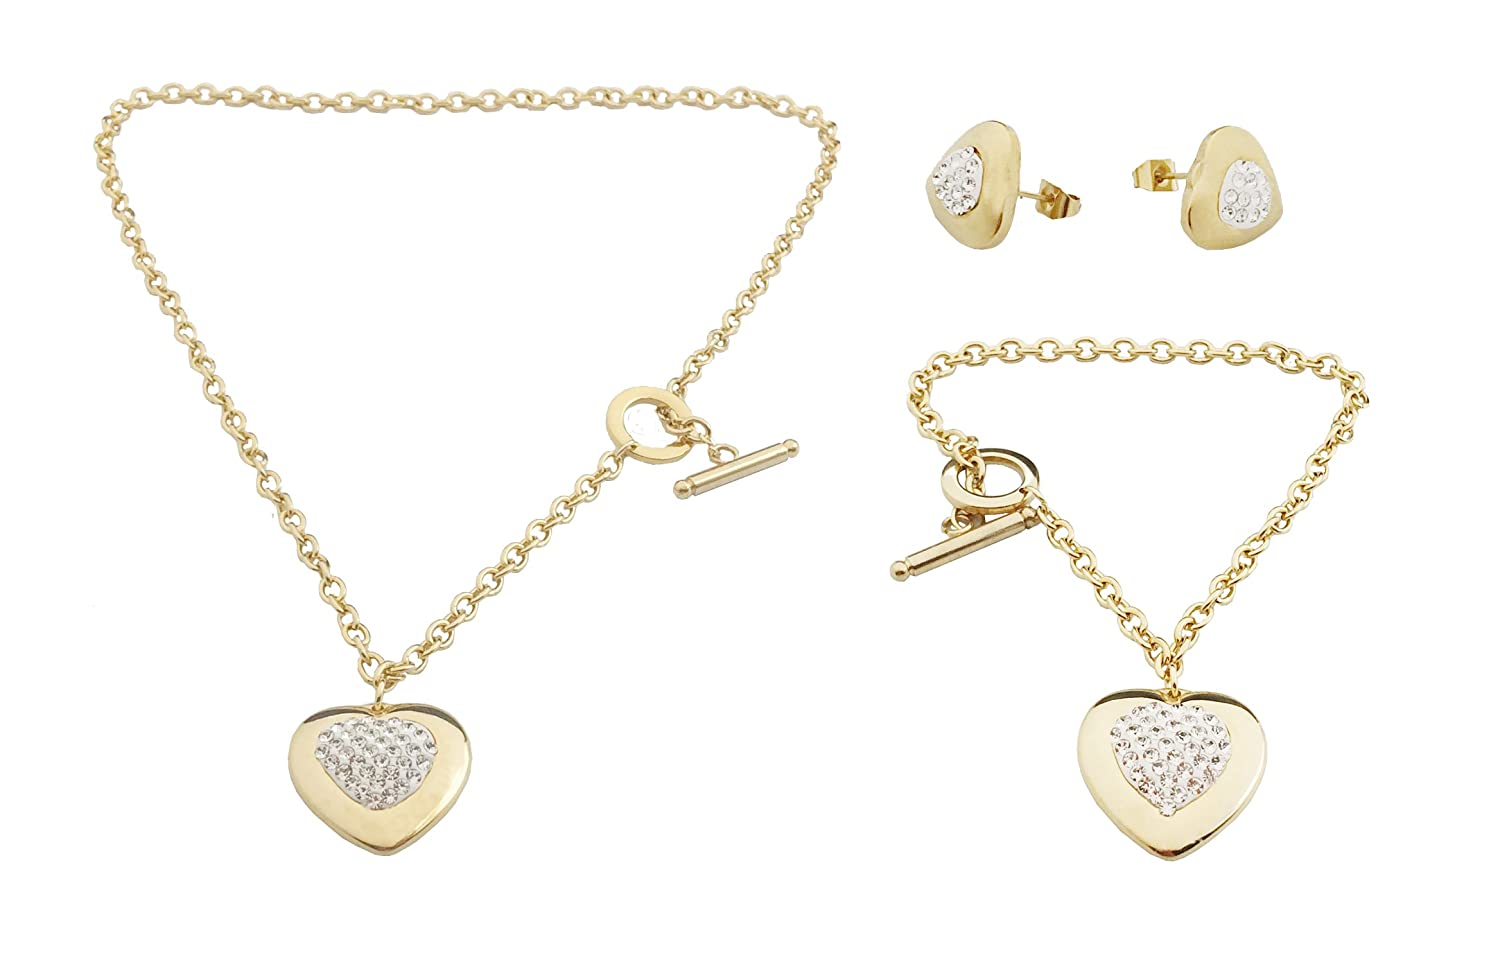 Think Positive Women's Stainless Steel Fashion Jewelry Sets Heart Pendant Necklace Earrings Charm Bracelet with Cubic Zirconia Gold Plating Shen Zhen Shouya none